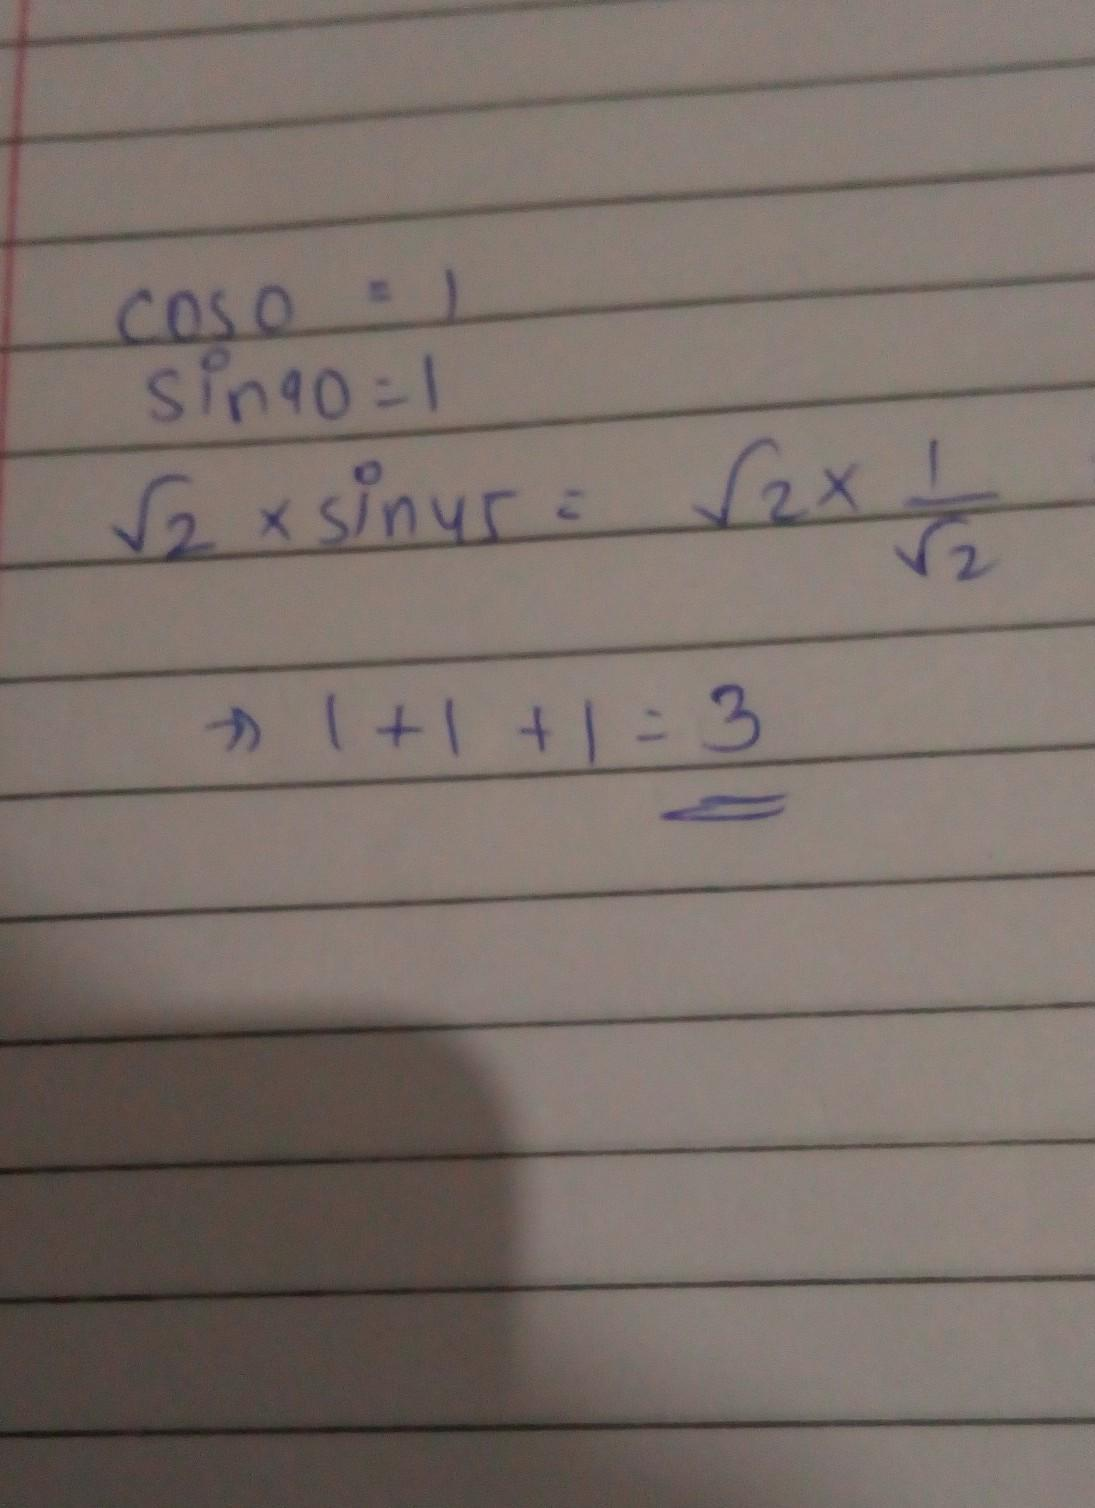 Find The Value Of Cos0 Sin 90 Root 2 Sin 45 Brainly In